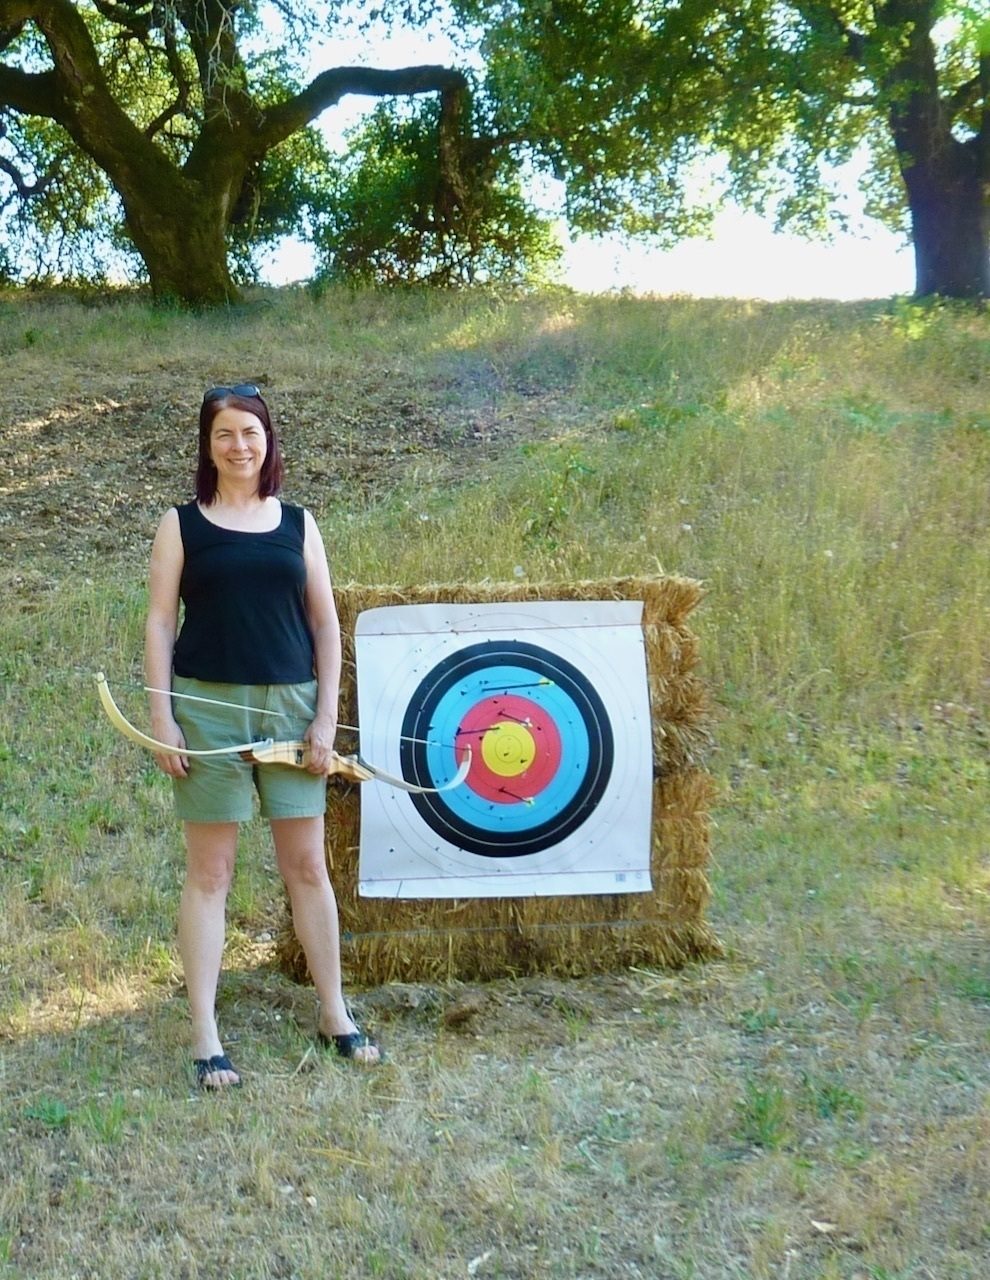 Me standing next to an archery target.